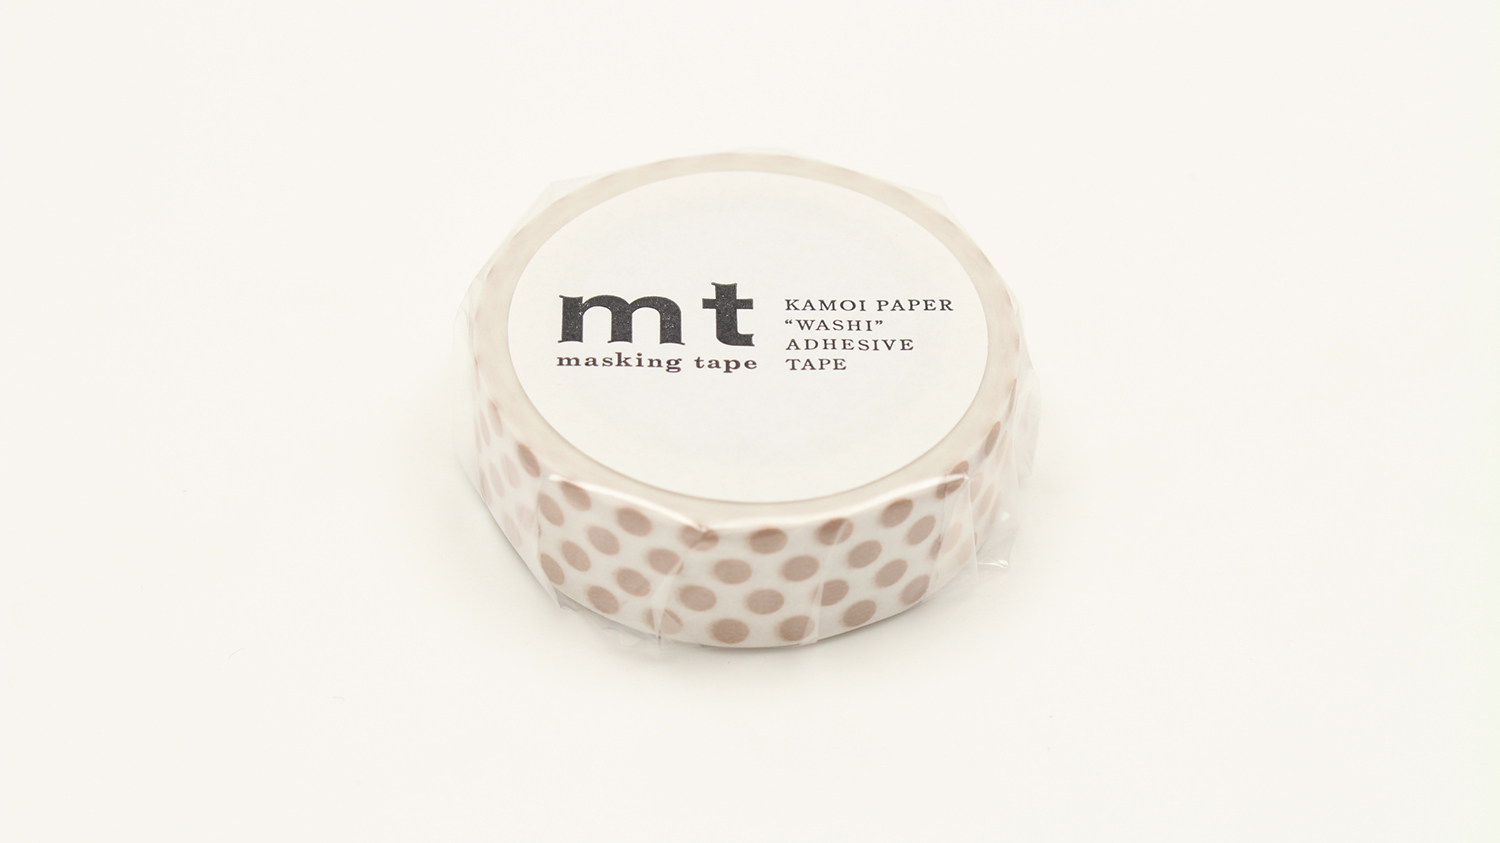 mt-masking-tape-dot-milk-tea-MT01D364-roll-3.jpg